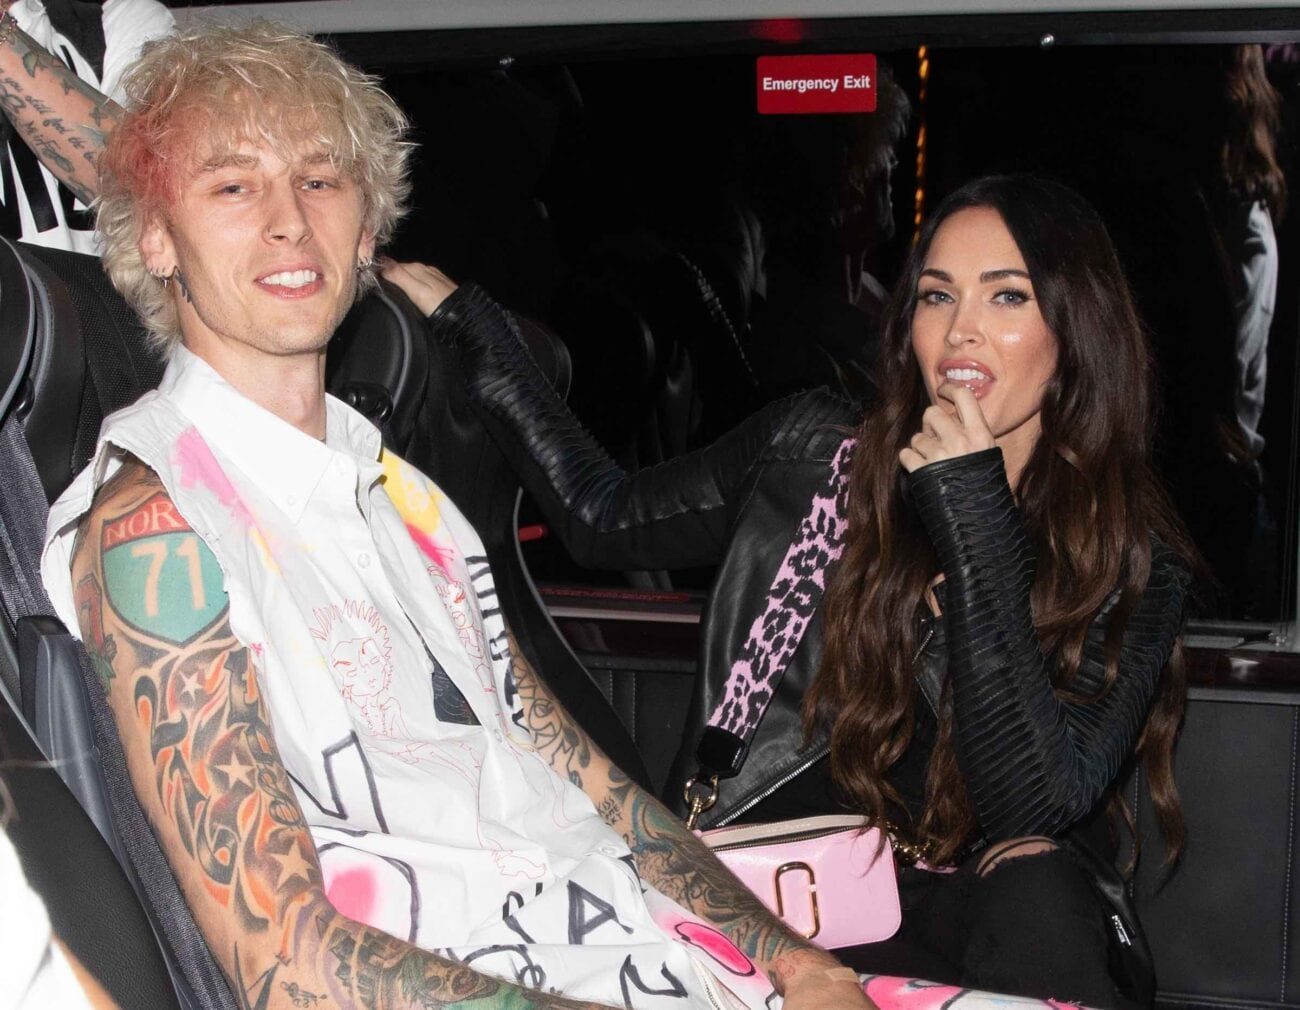 Megan Fox & Machine Gun Kelly went on an ayahuasca journey in Costa Rica. Take a trip into their story about going to hell and back in Central America.